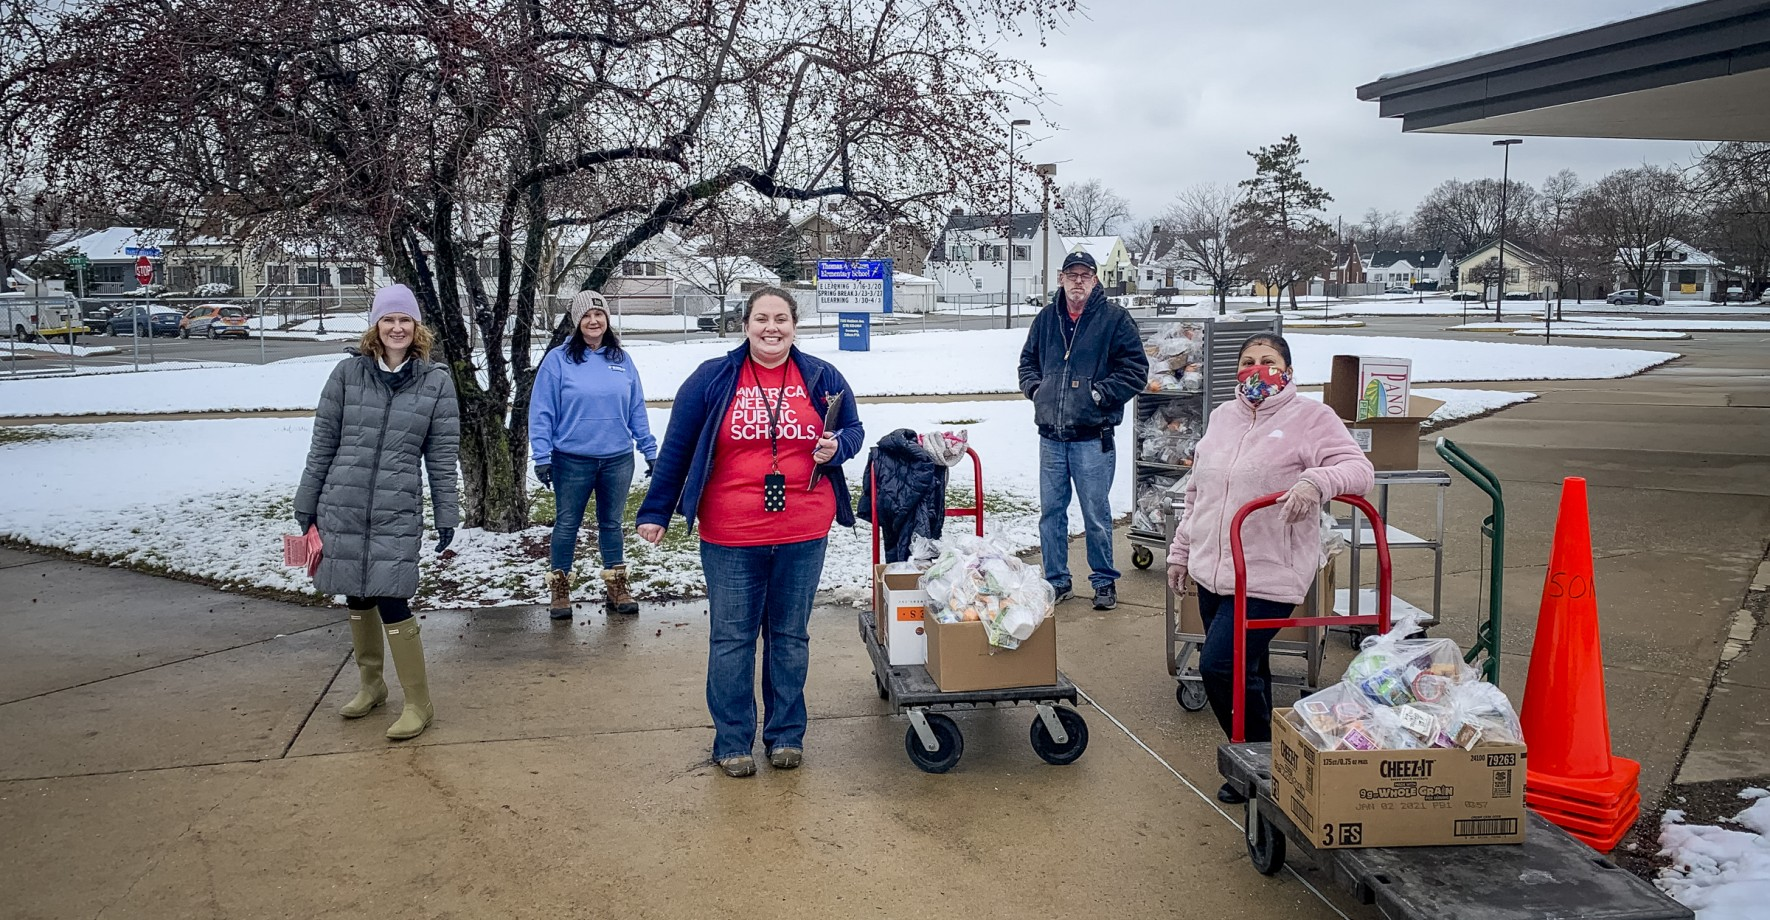 Food service staff pose outside in the snow, ready with carts of food to feed kids.